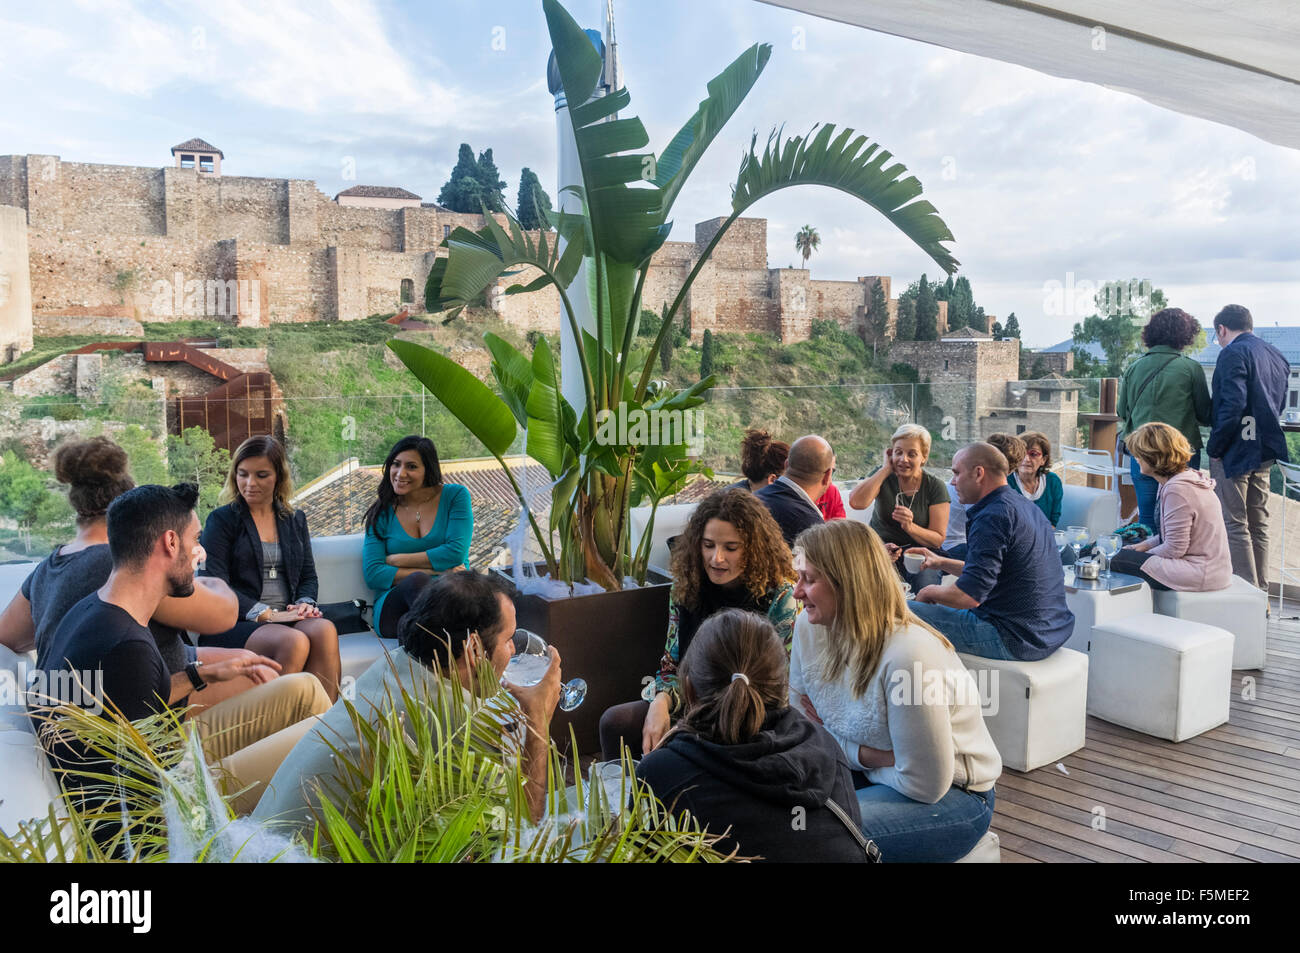 People at rooftop terrace bar and Alcazaba Moorish castle in background. Malaga, Andalusia, Spain - Stock Image